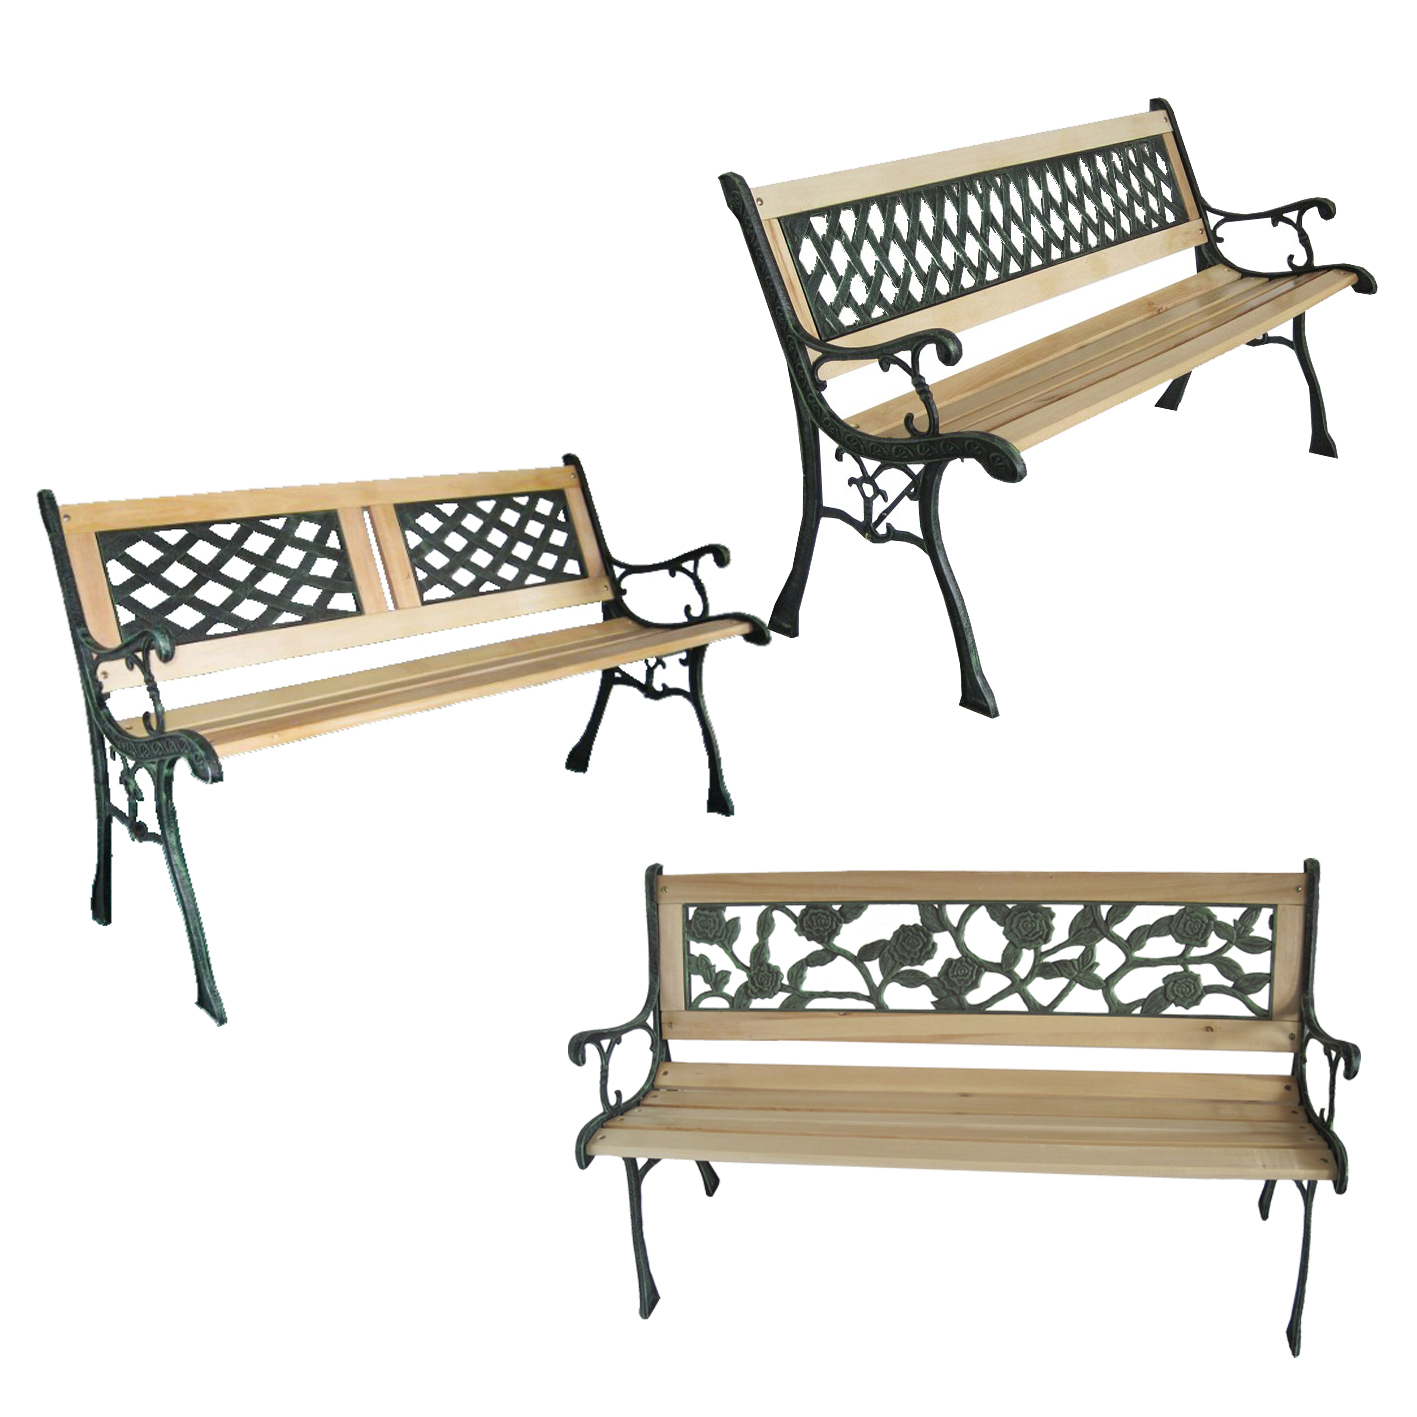 New 3 seater outdoor wooden garden bench with cast iron legs park seat furniture ebay Wrought iron outdoor bench